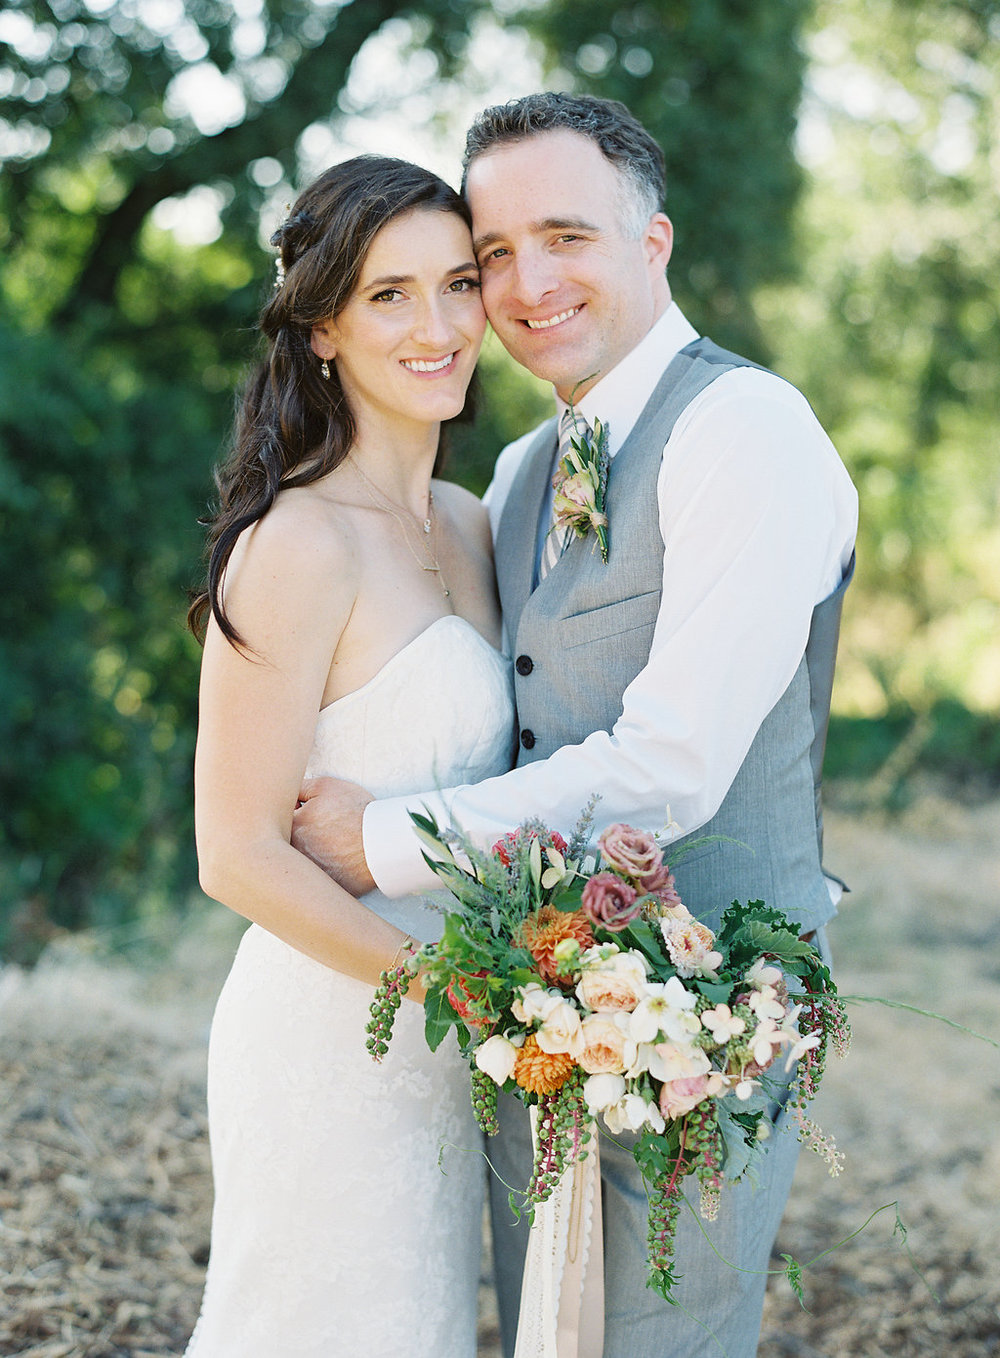 Meghan Mehan Photography - California Wedding Photography - Sacramento Wedding 020.jpg